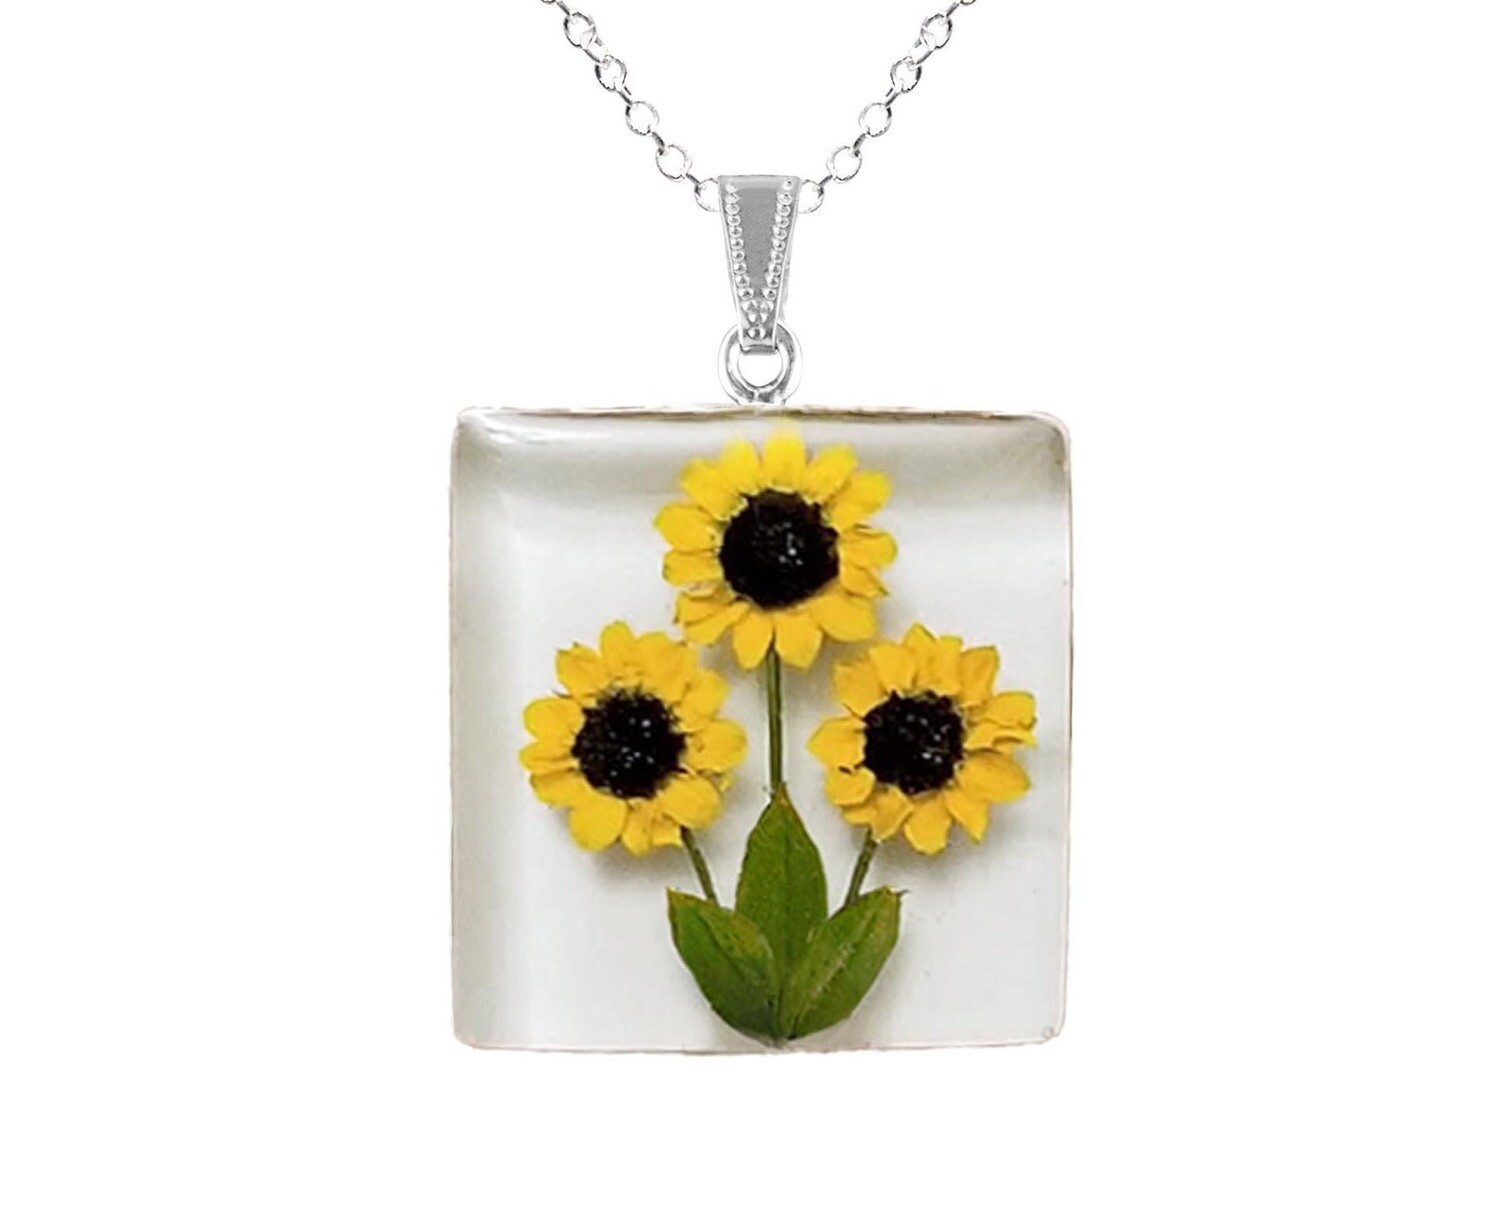 Sunflower Necklace, Large Square, White Background